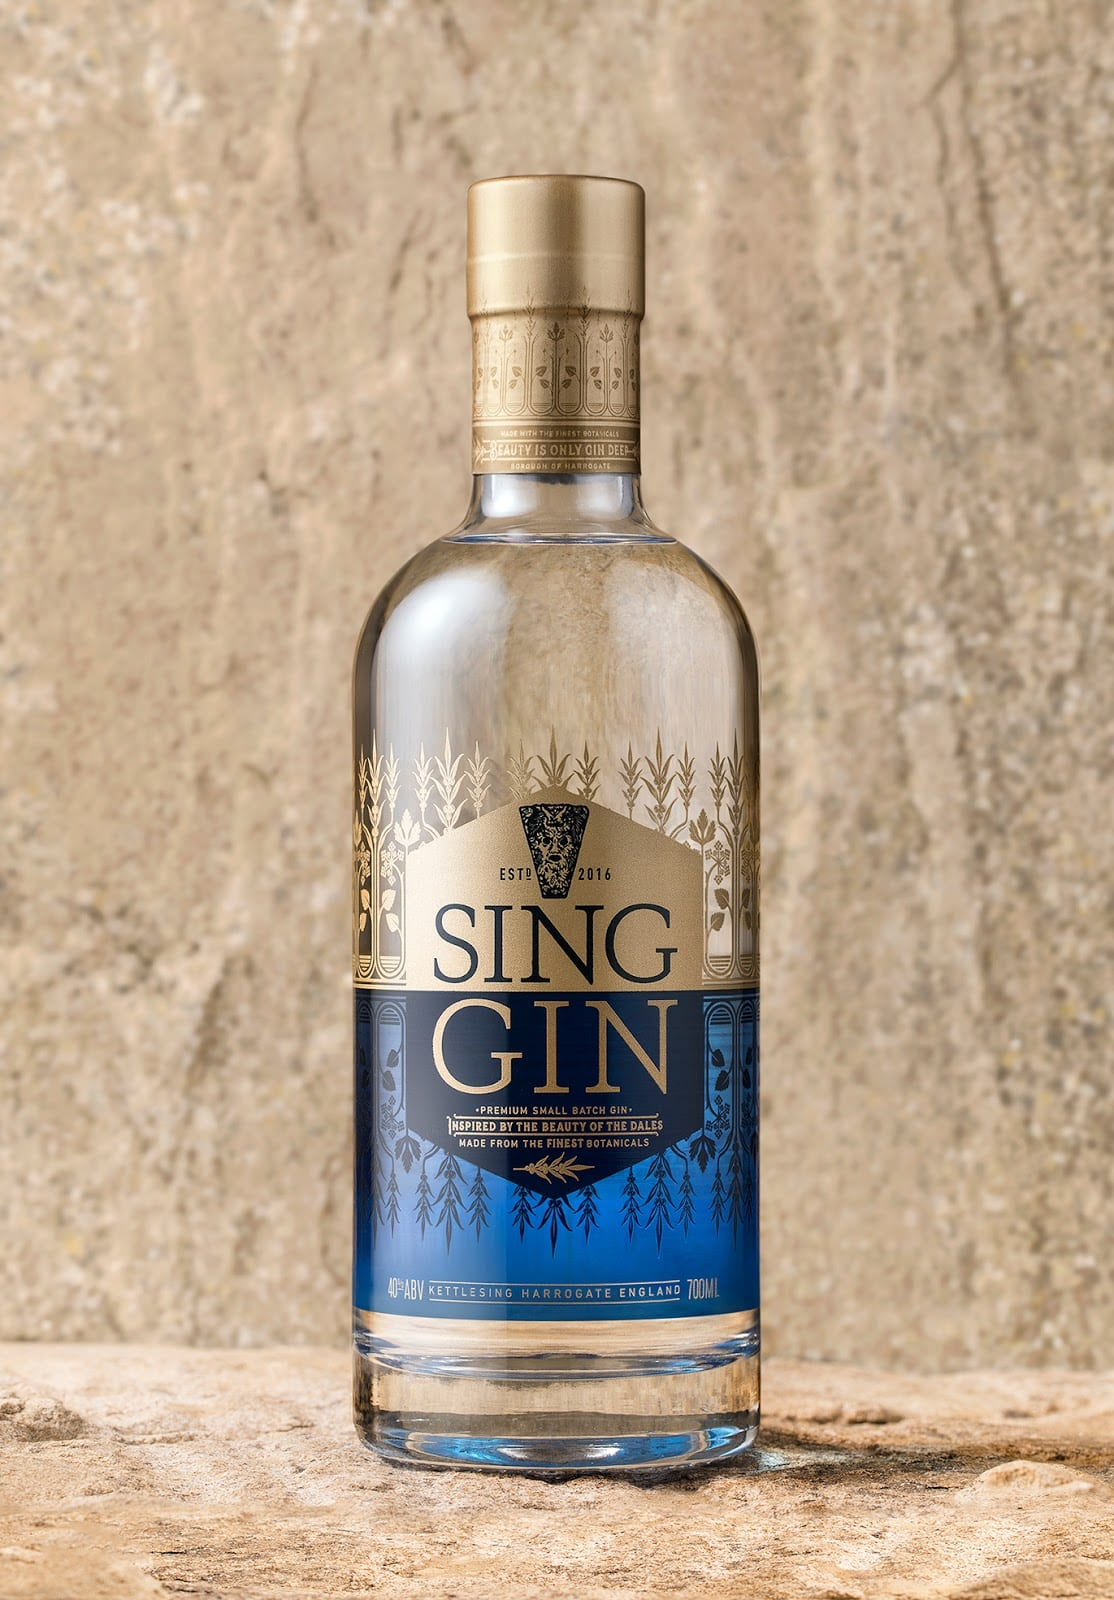 Sing Gin 02 - Ach, tie obaly – Sing Gin